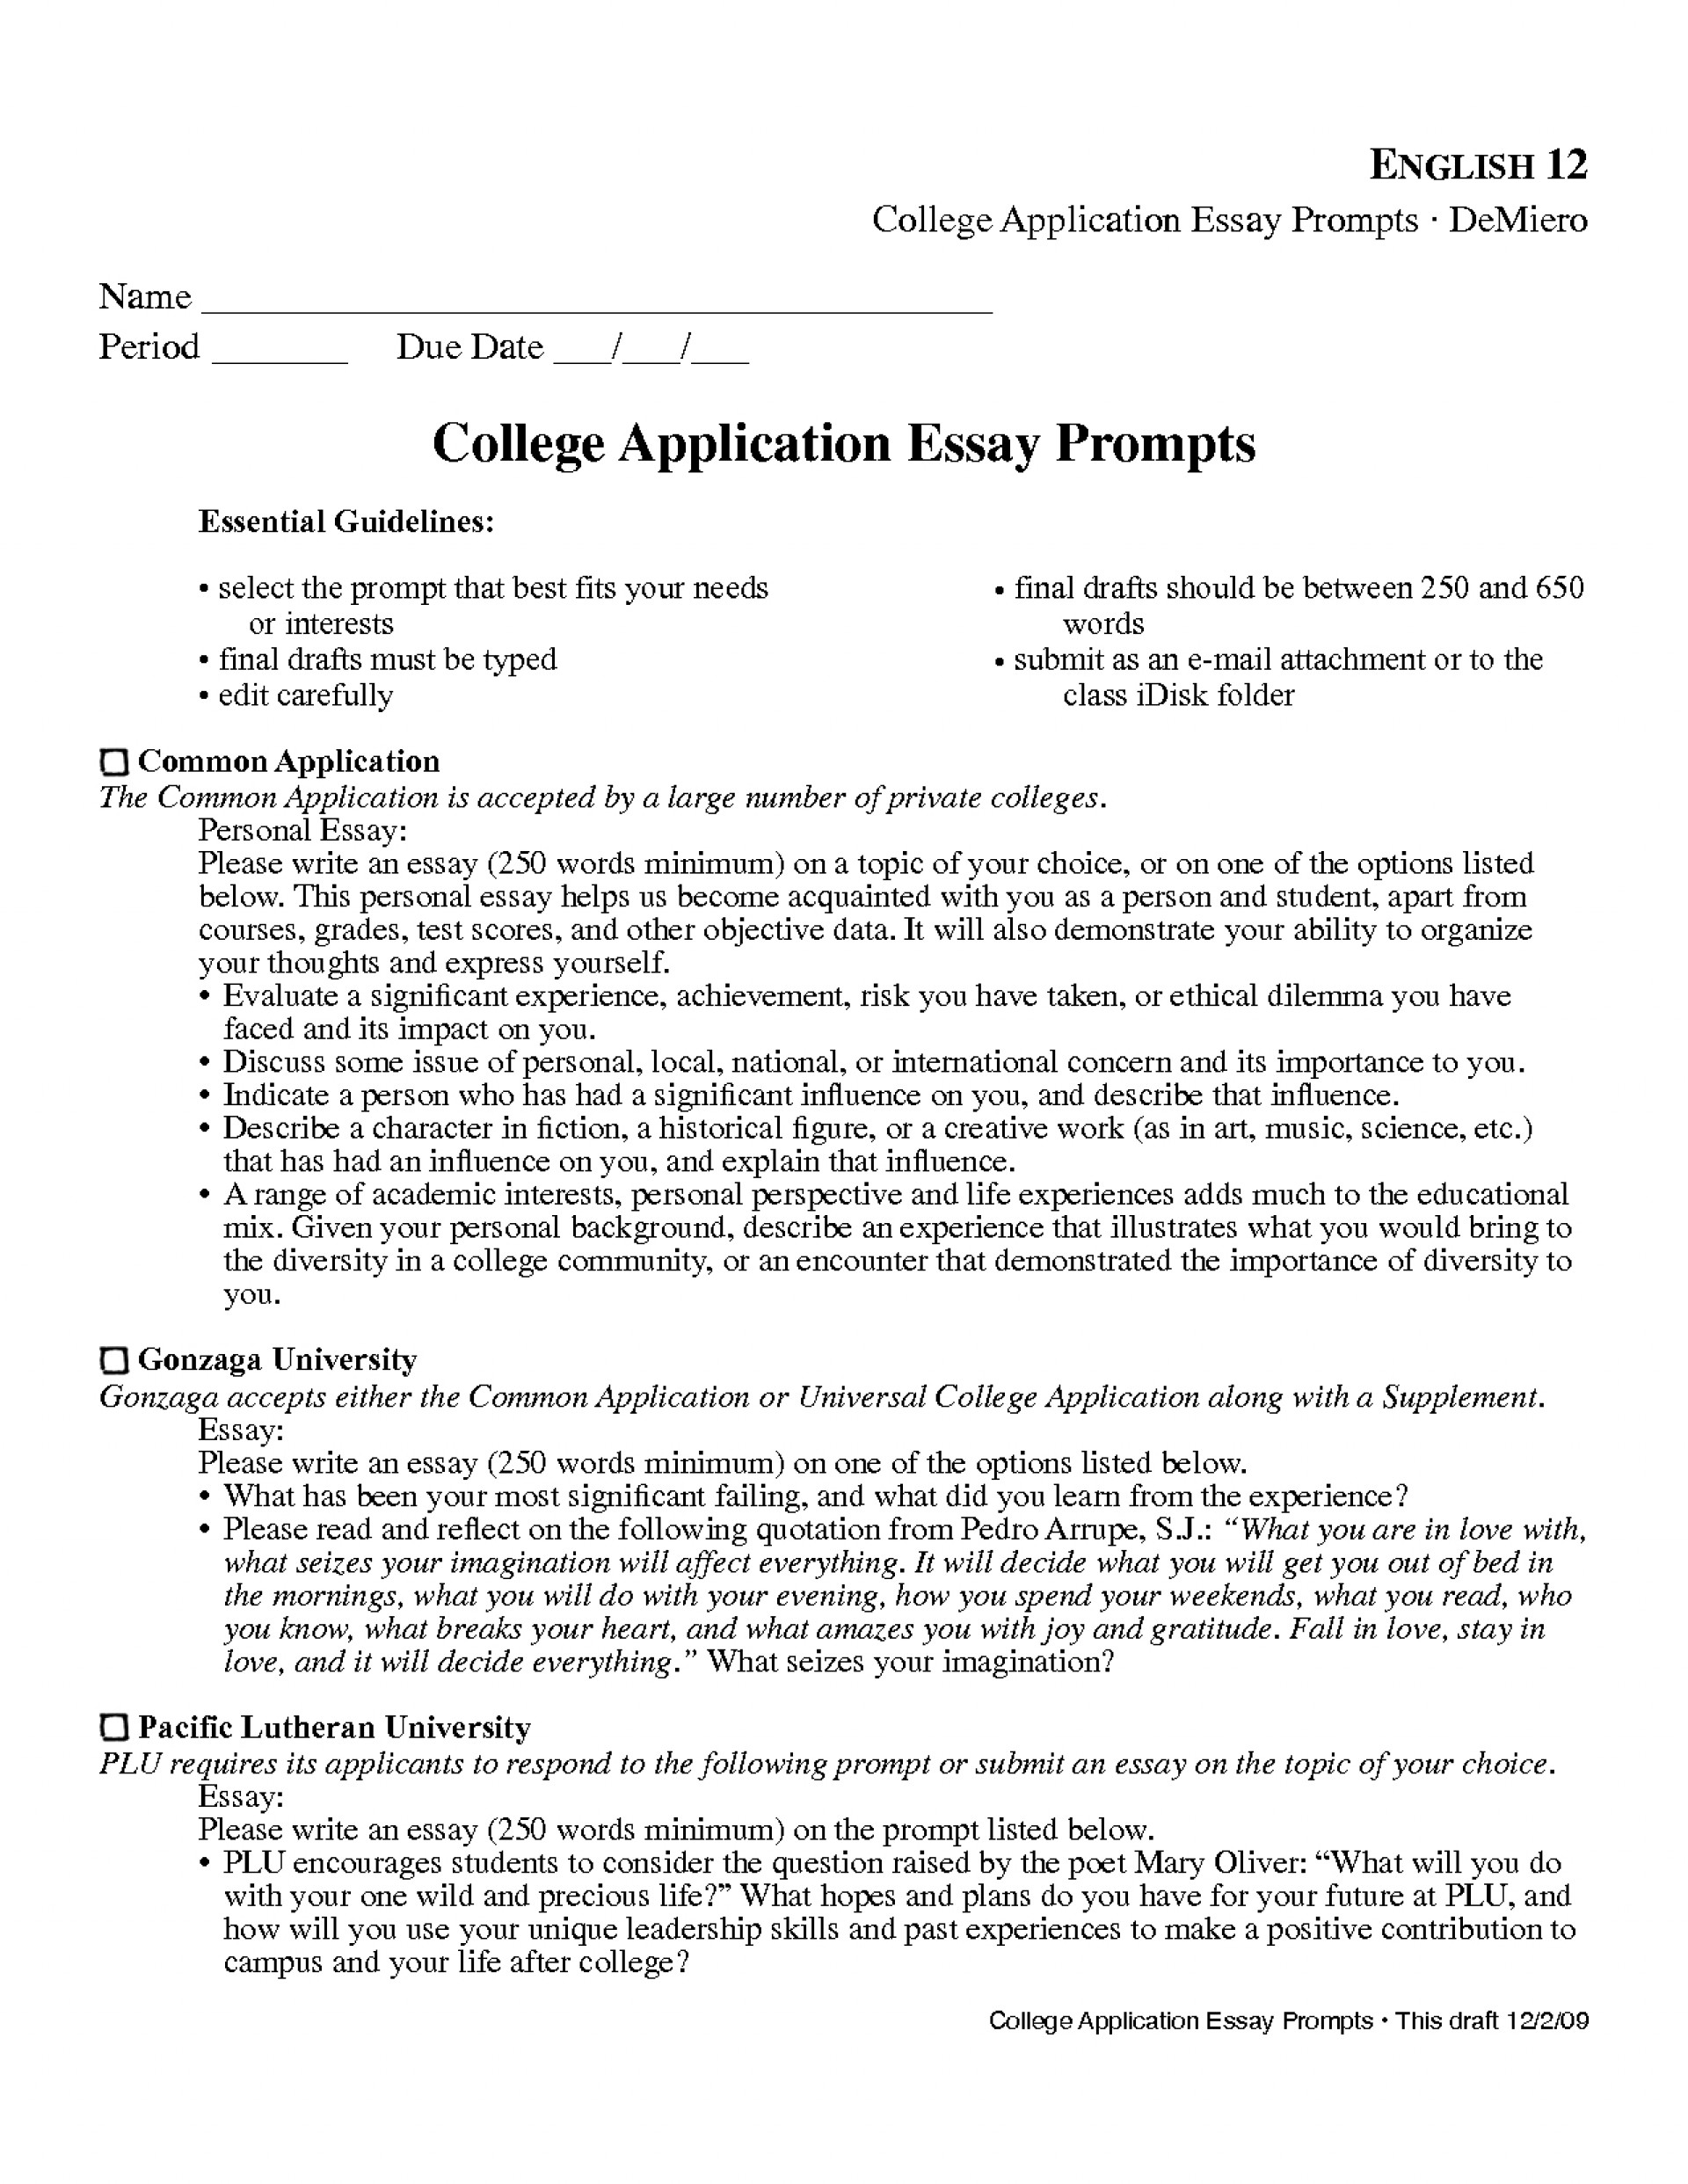 012 College Admissiony Topics Writings Andys Prompts Onwe Bioinnovate Co Throu Admissions Question Examples To Avoid Samples App Good Prompt Common Application Surprising Essay 2015 1920